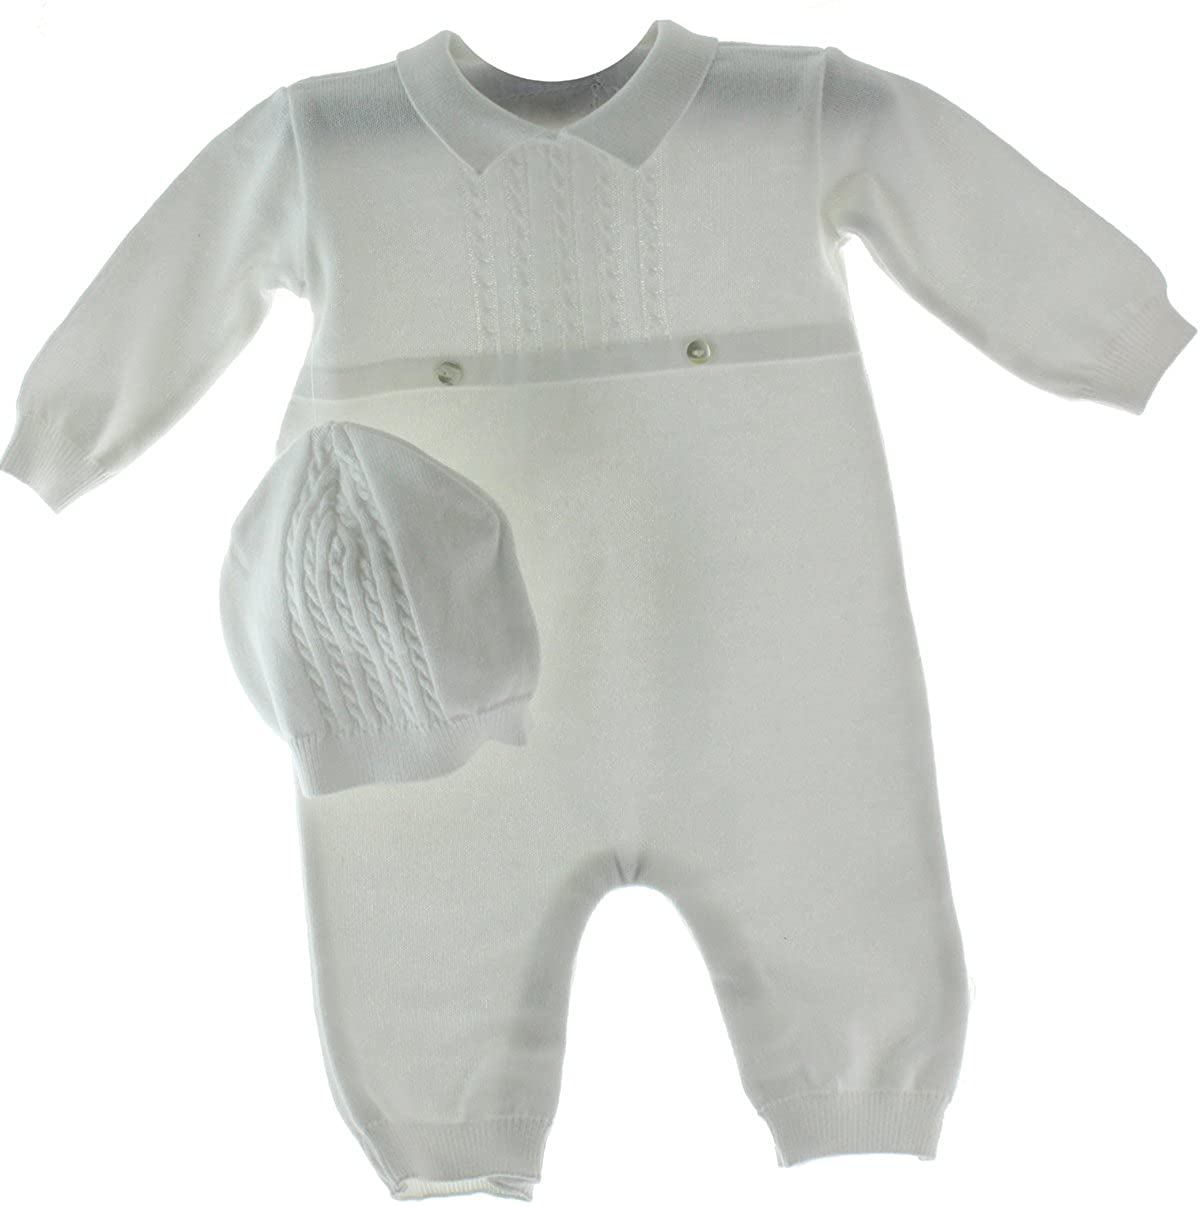 ff58a3f02 Amazon.com  Feltman Brothers Baby Boys White Knit Coverall Set With ...